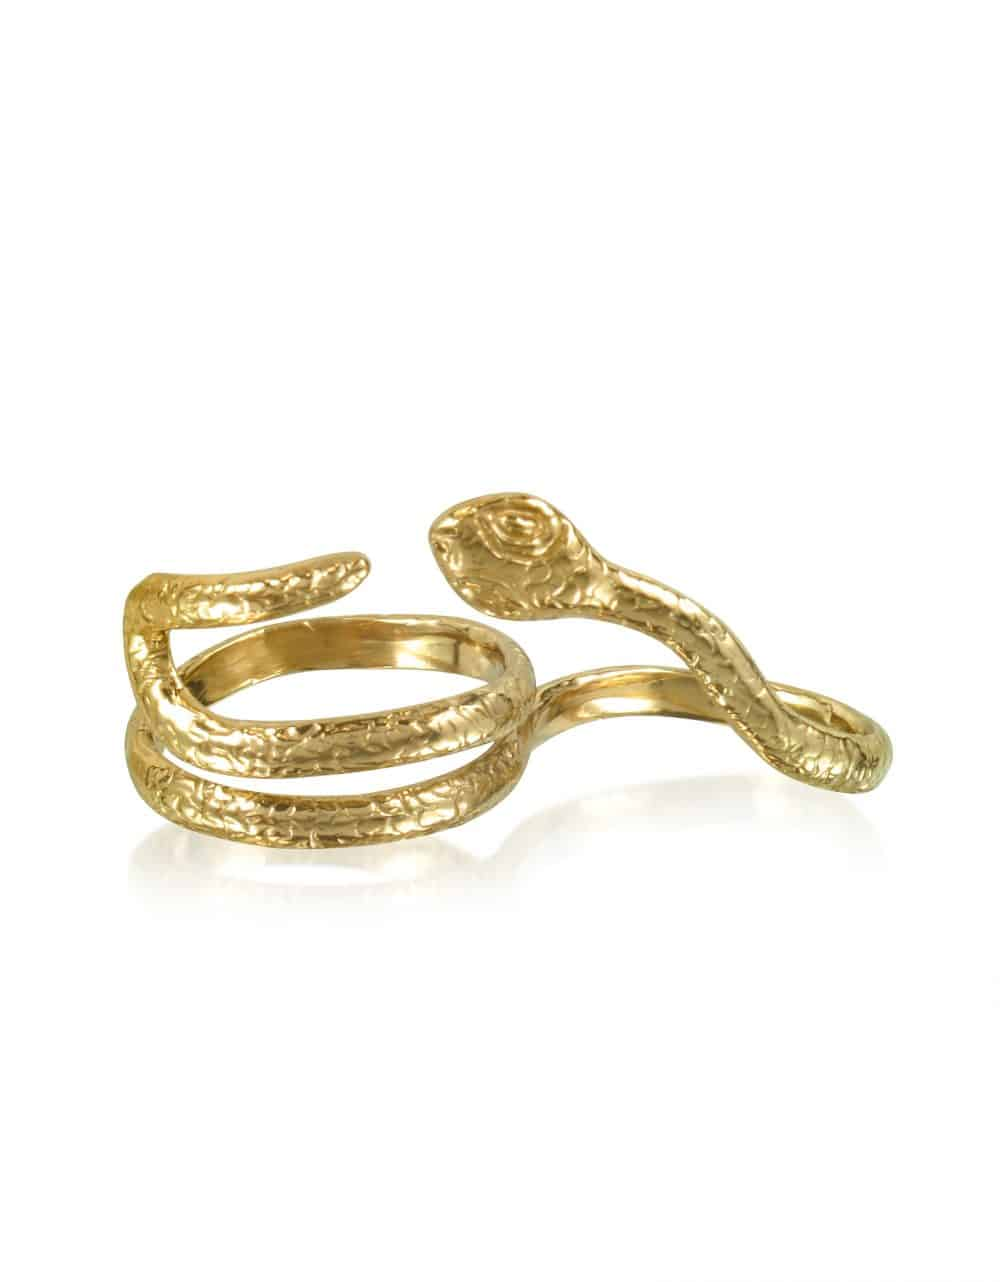 Bernard Delettrez Rings Two Fingers Bronze Ring w/2 Laps Snake